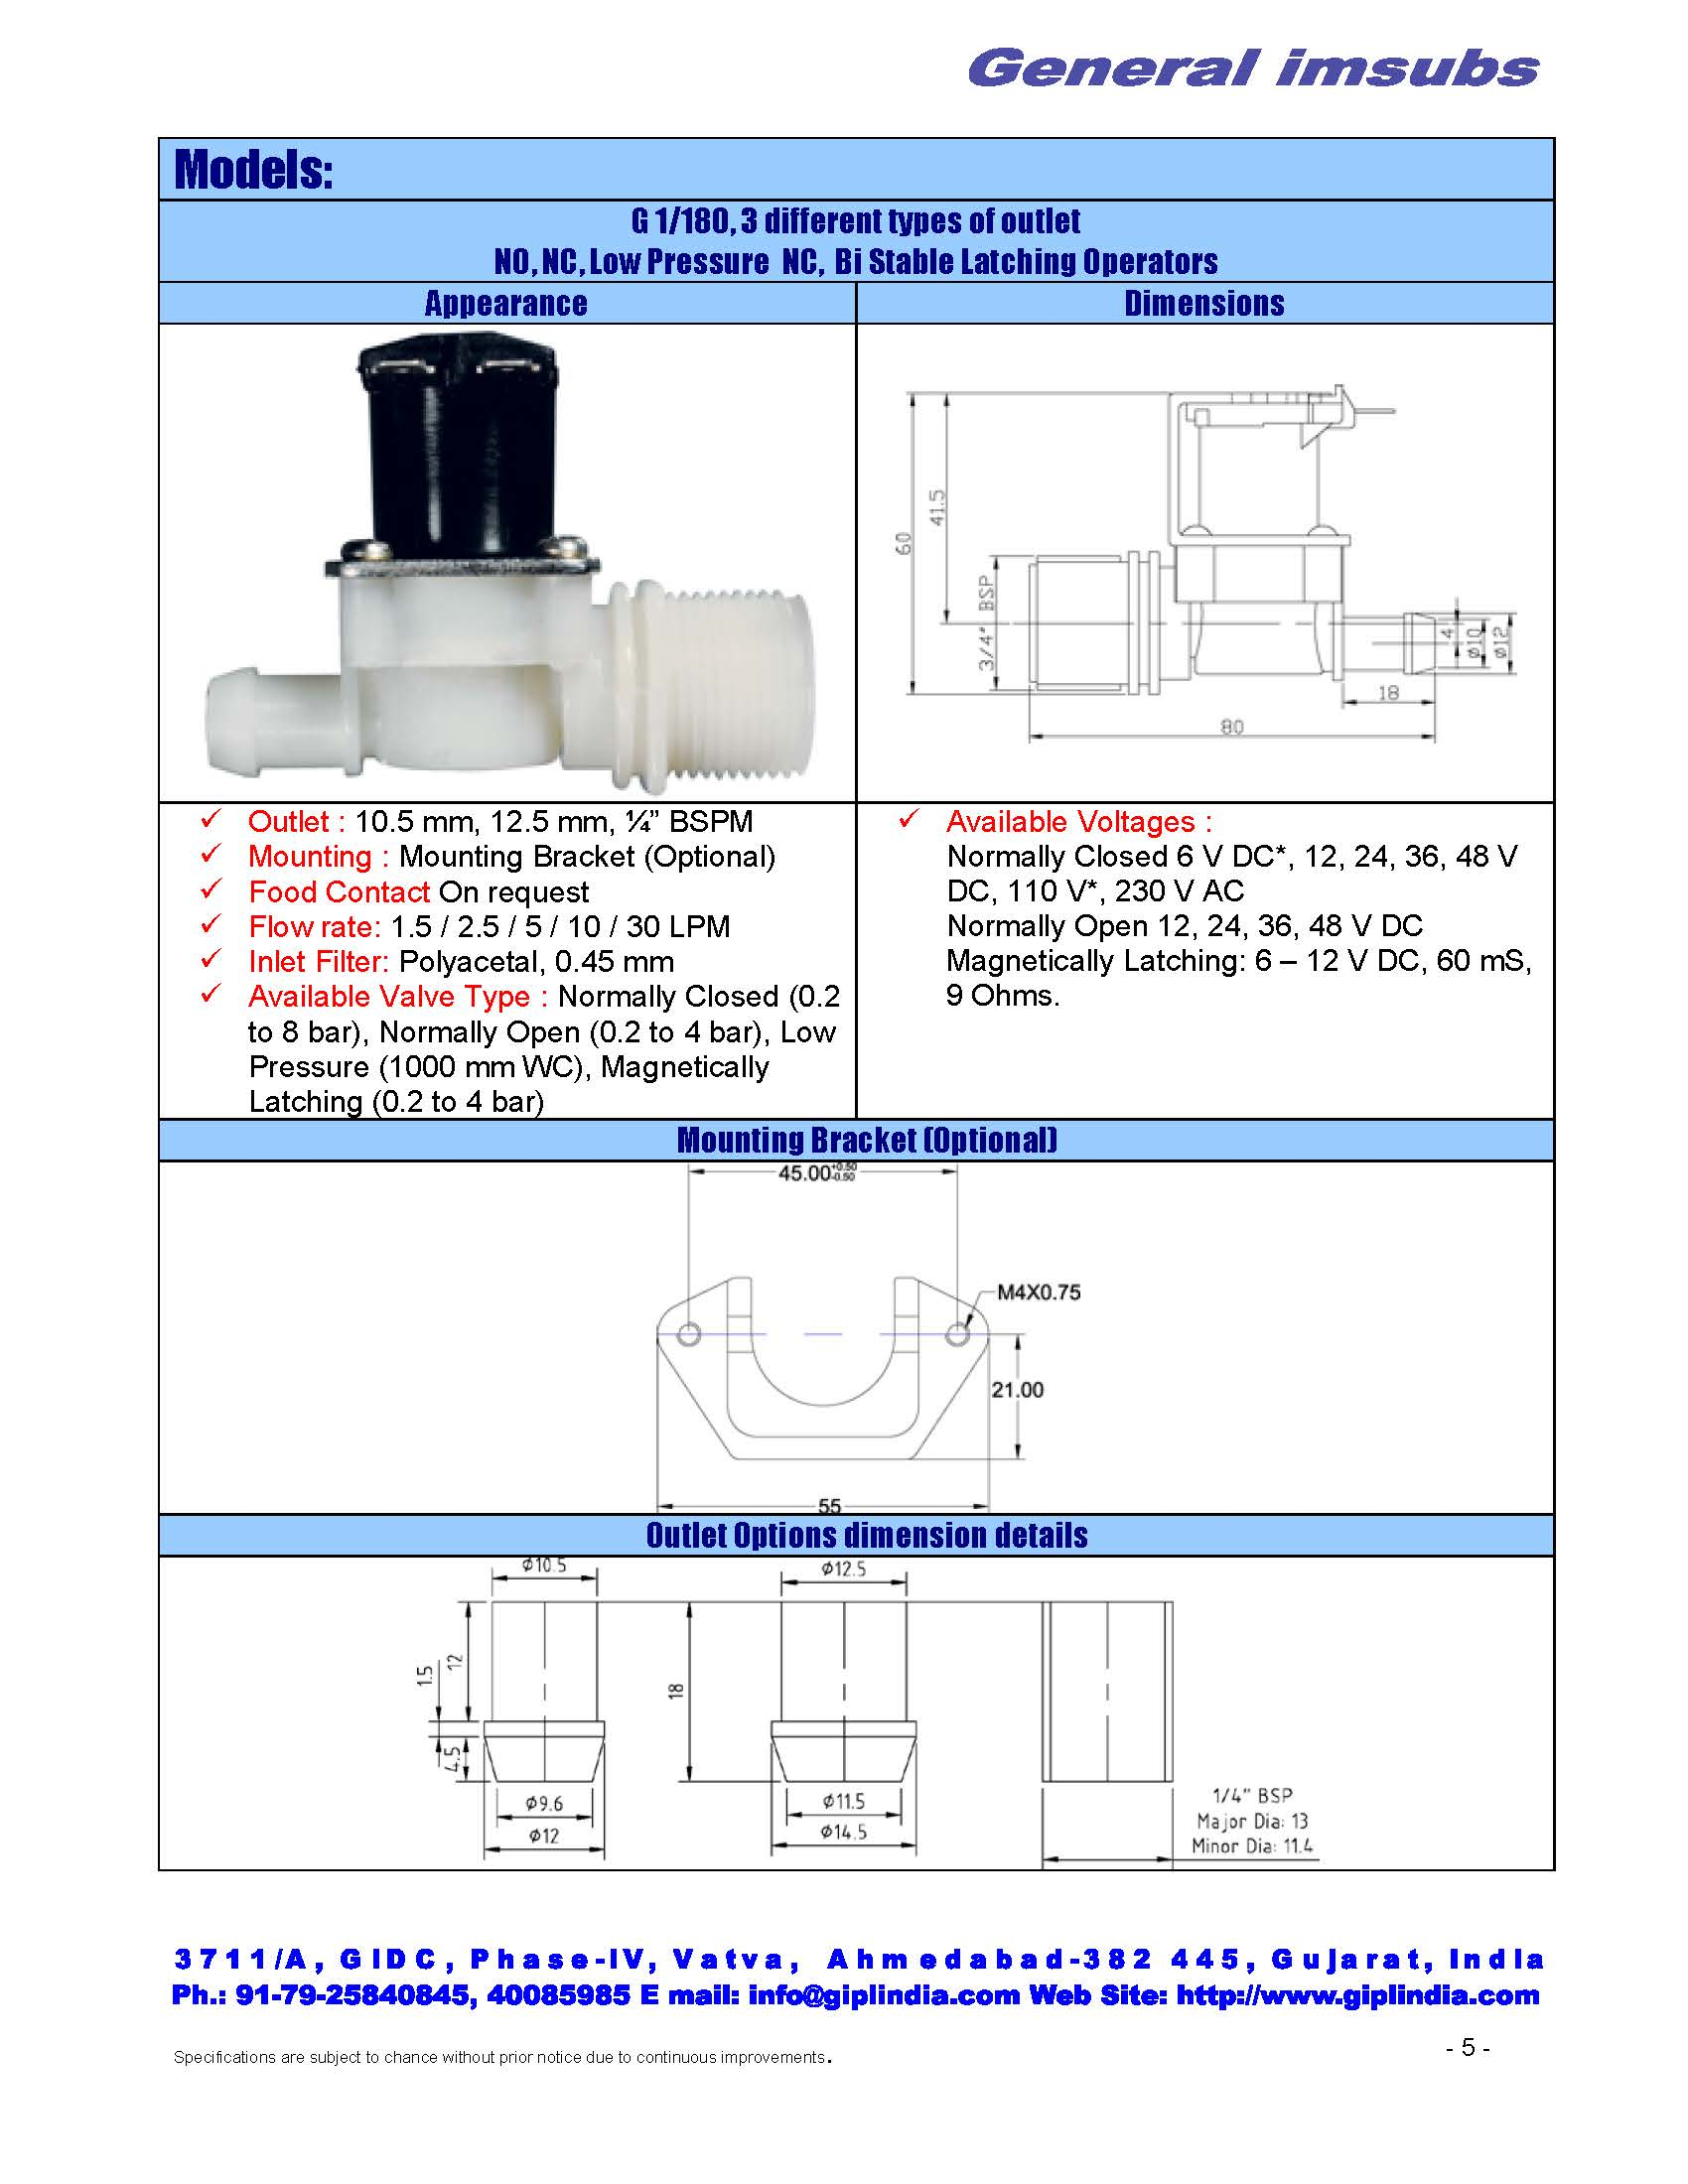 "bistable latching solenoid valve, 3/4"" inlet, 3 type of outlets"